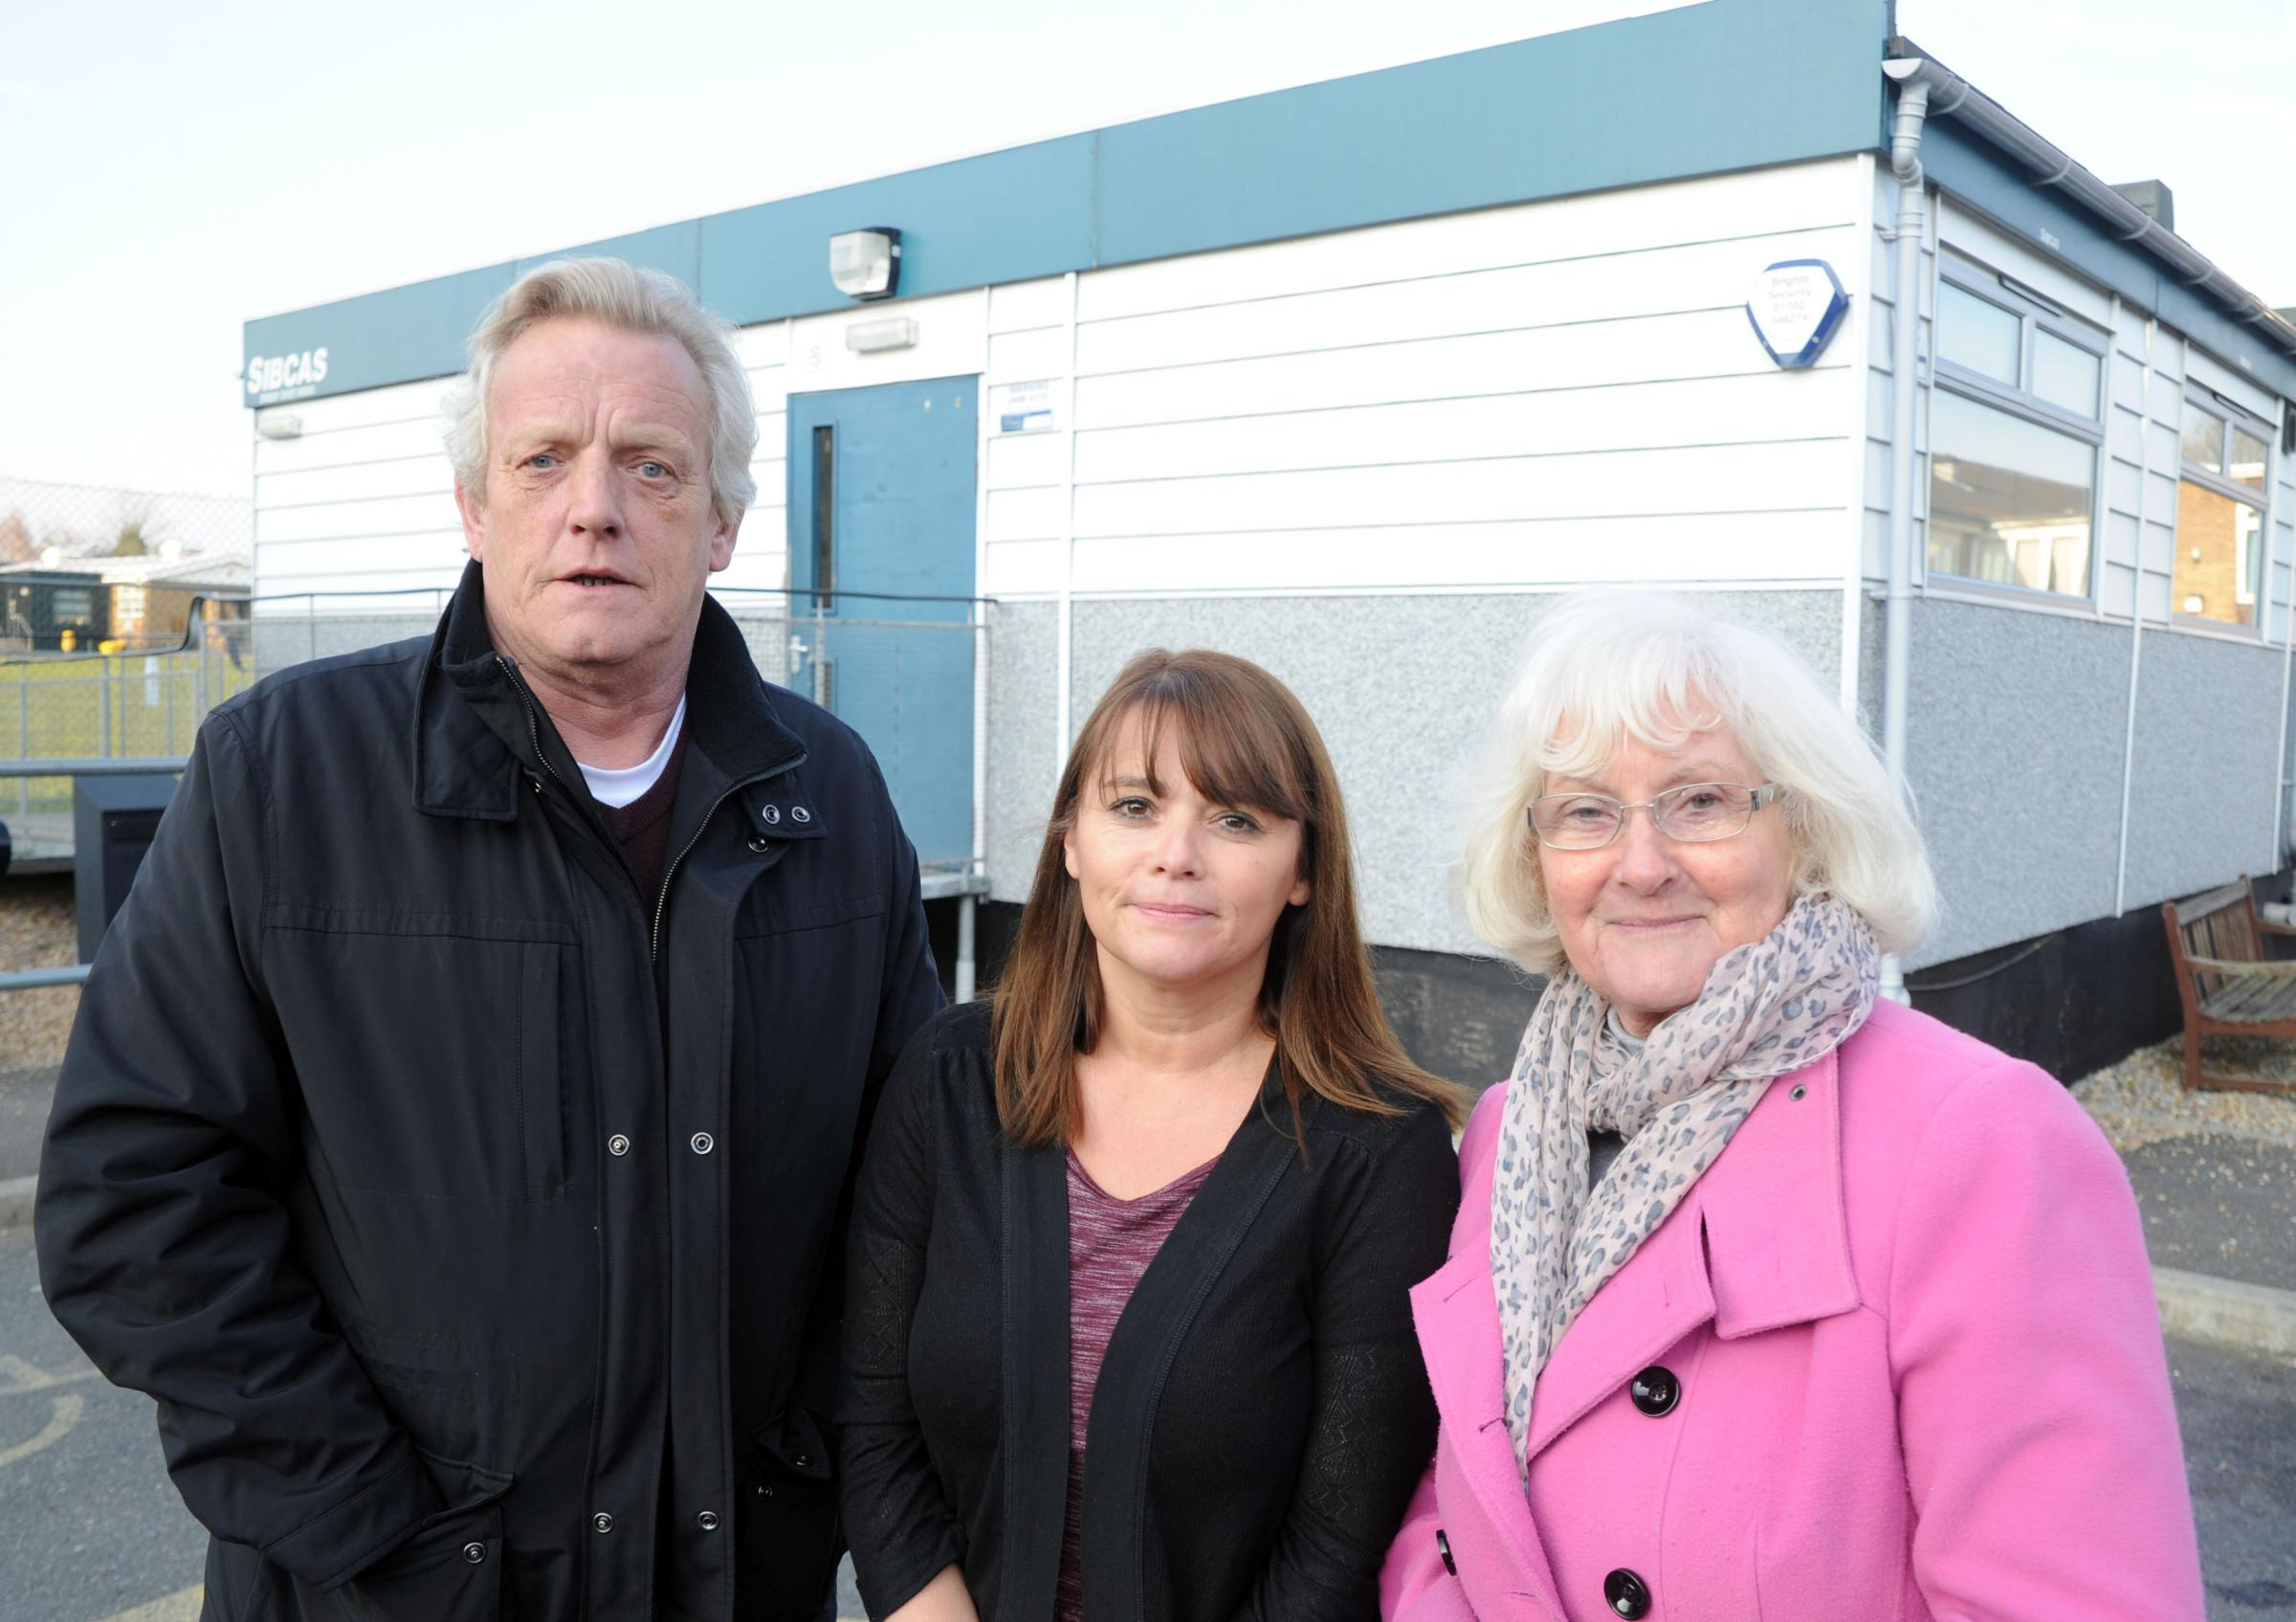 practice manager Lorna Salmon flanked by councillors Paul van Looy and Sally Carr outside the